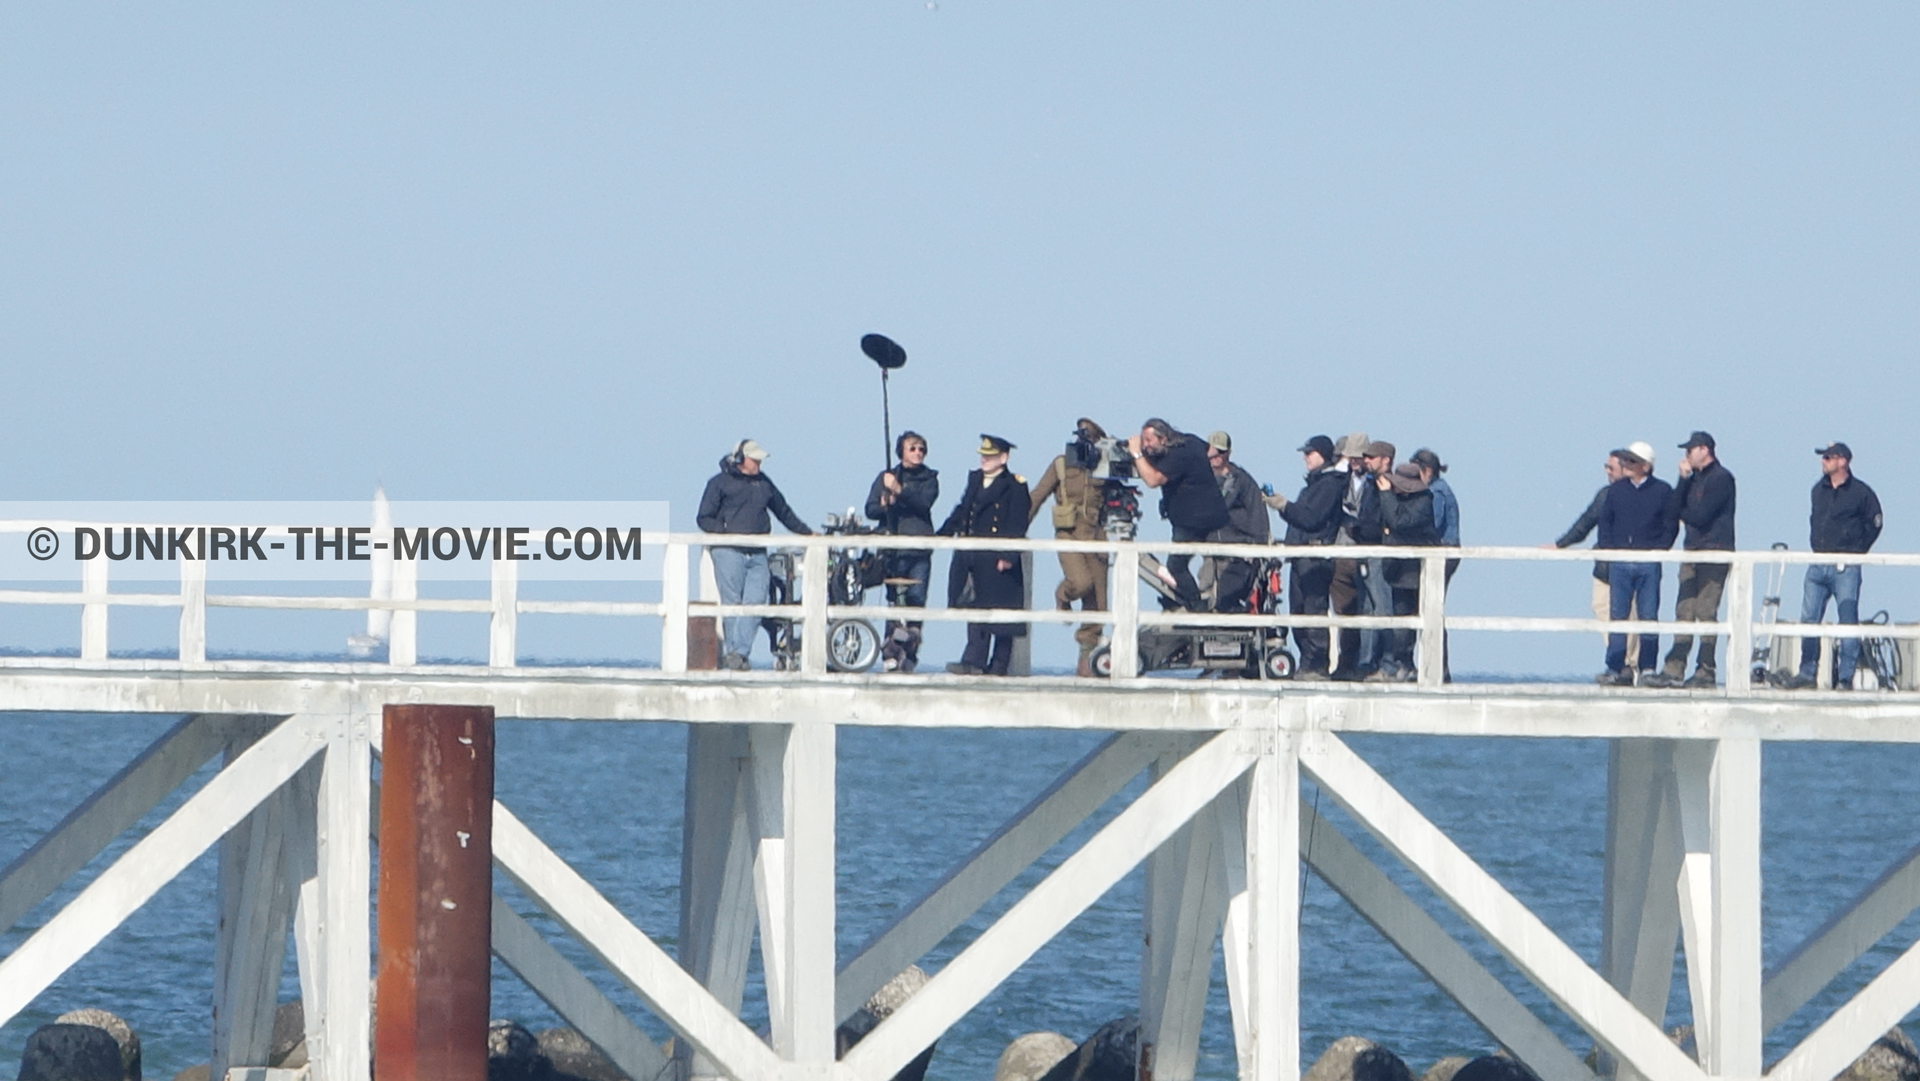 Picture with actor, IMAX camera, Hoyte van Hoytema, EST pier, Kenneth Branagh, technical team,  from behind the scene of the Dunkirk movie by Nolan